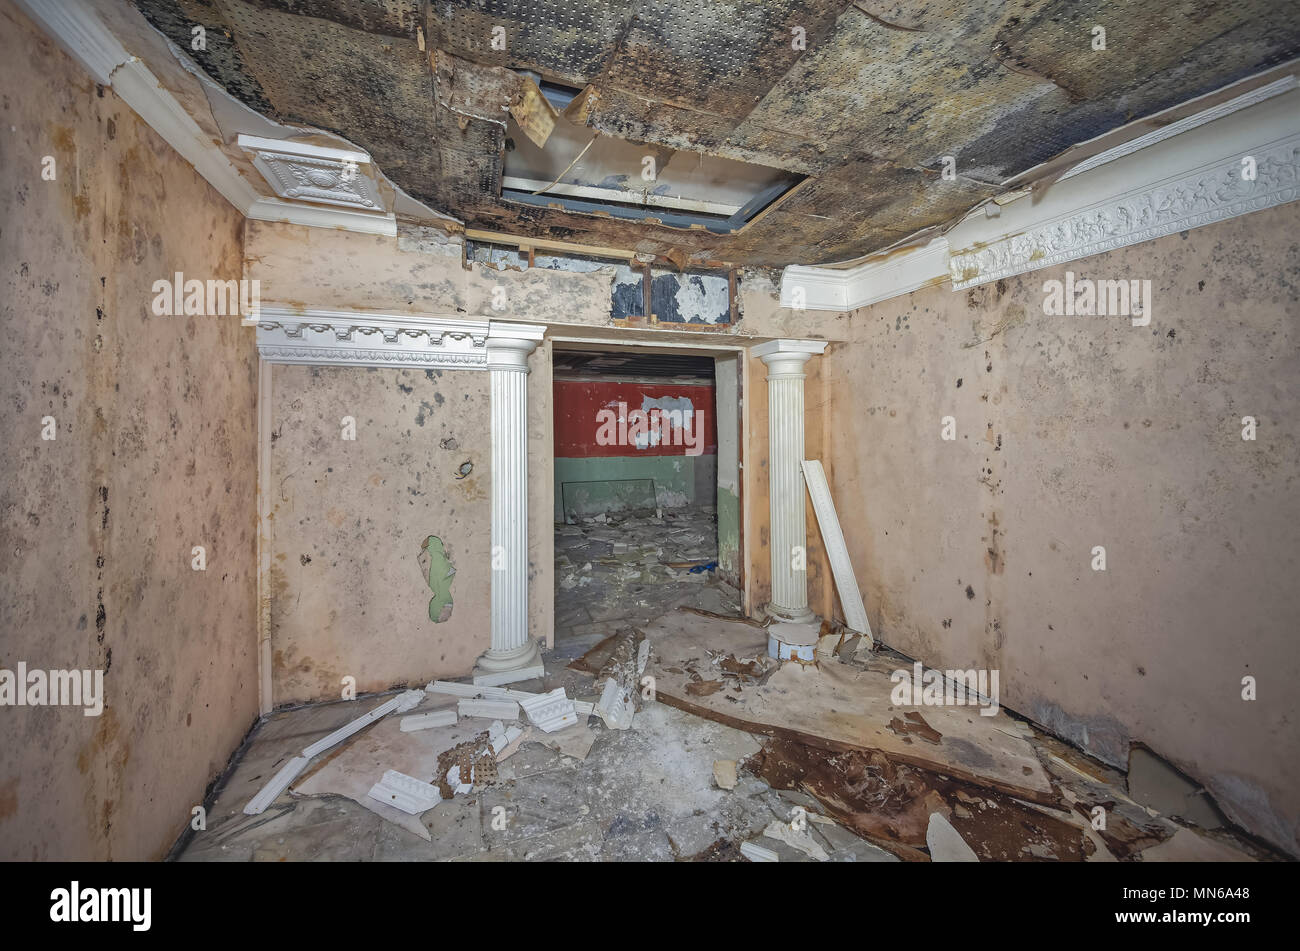 Room in an old abandoned Soviet shelter with decorative antique columns and garbage on the floor. Dampened suspended ceiling with mold. Stock Photo